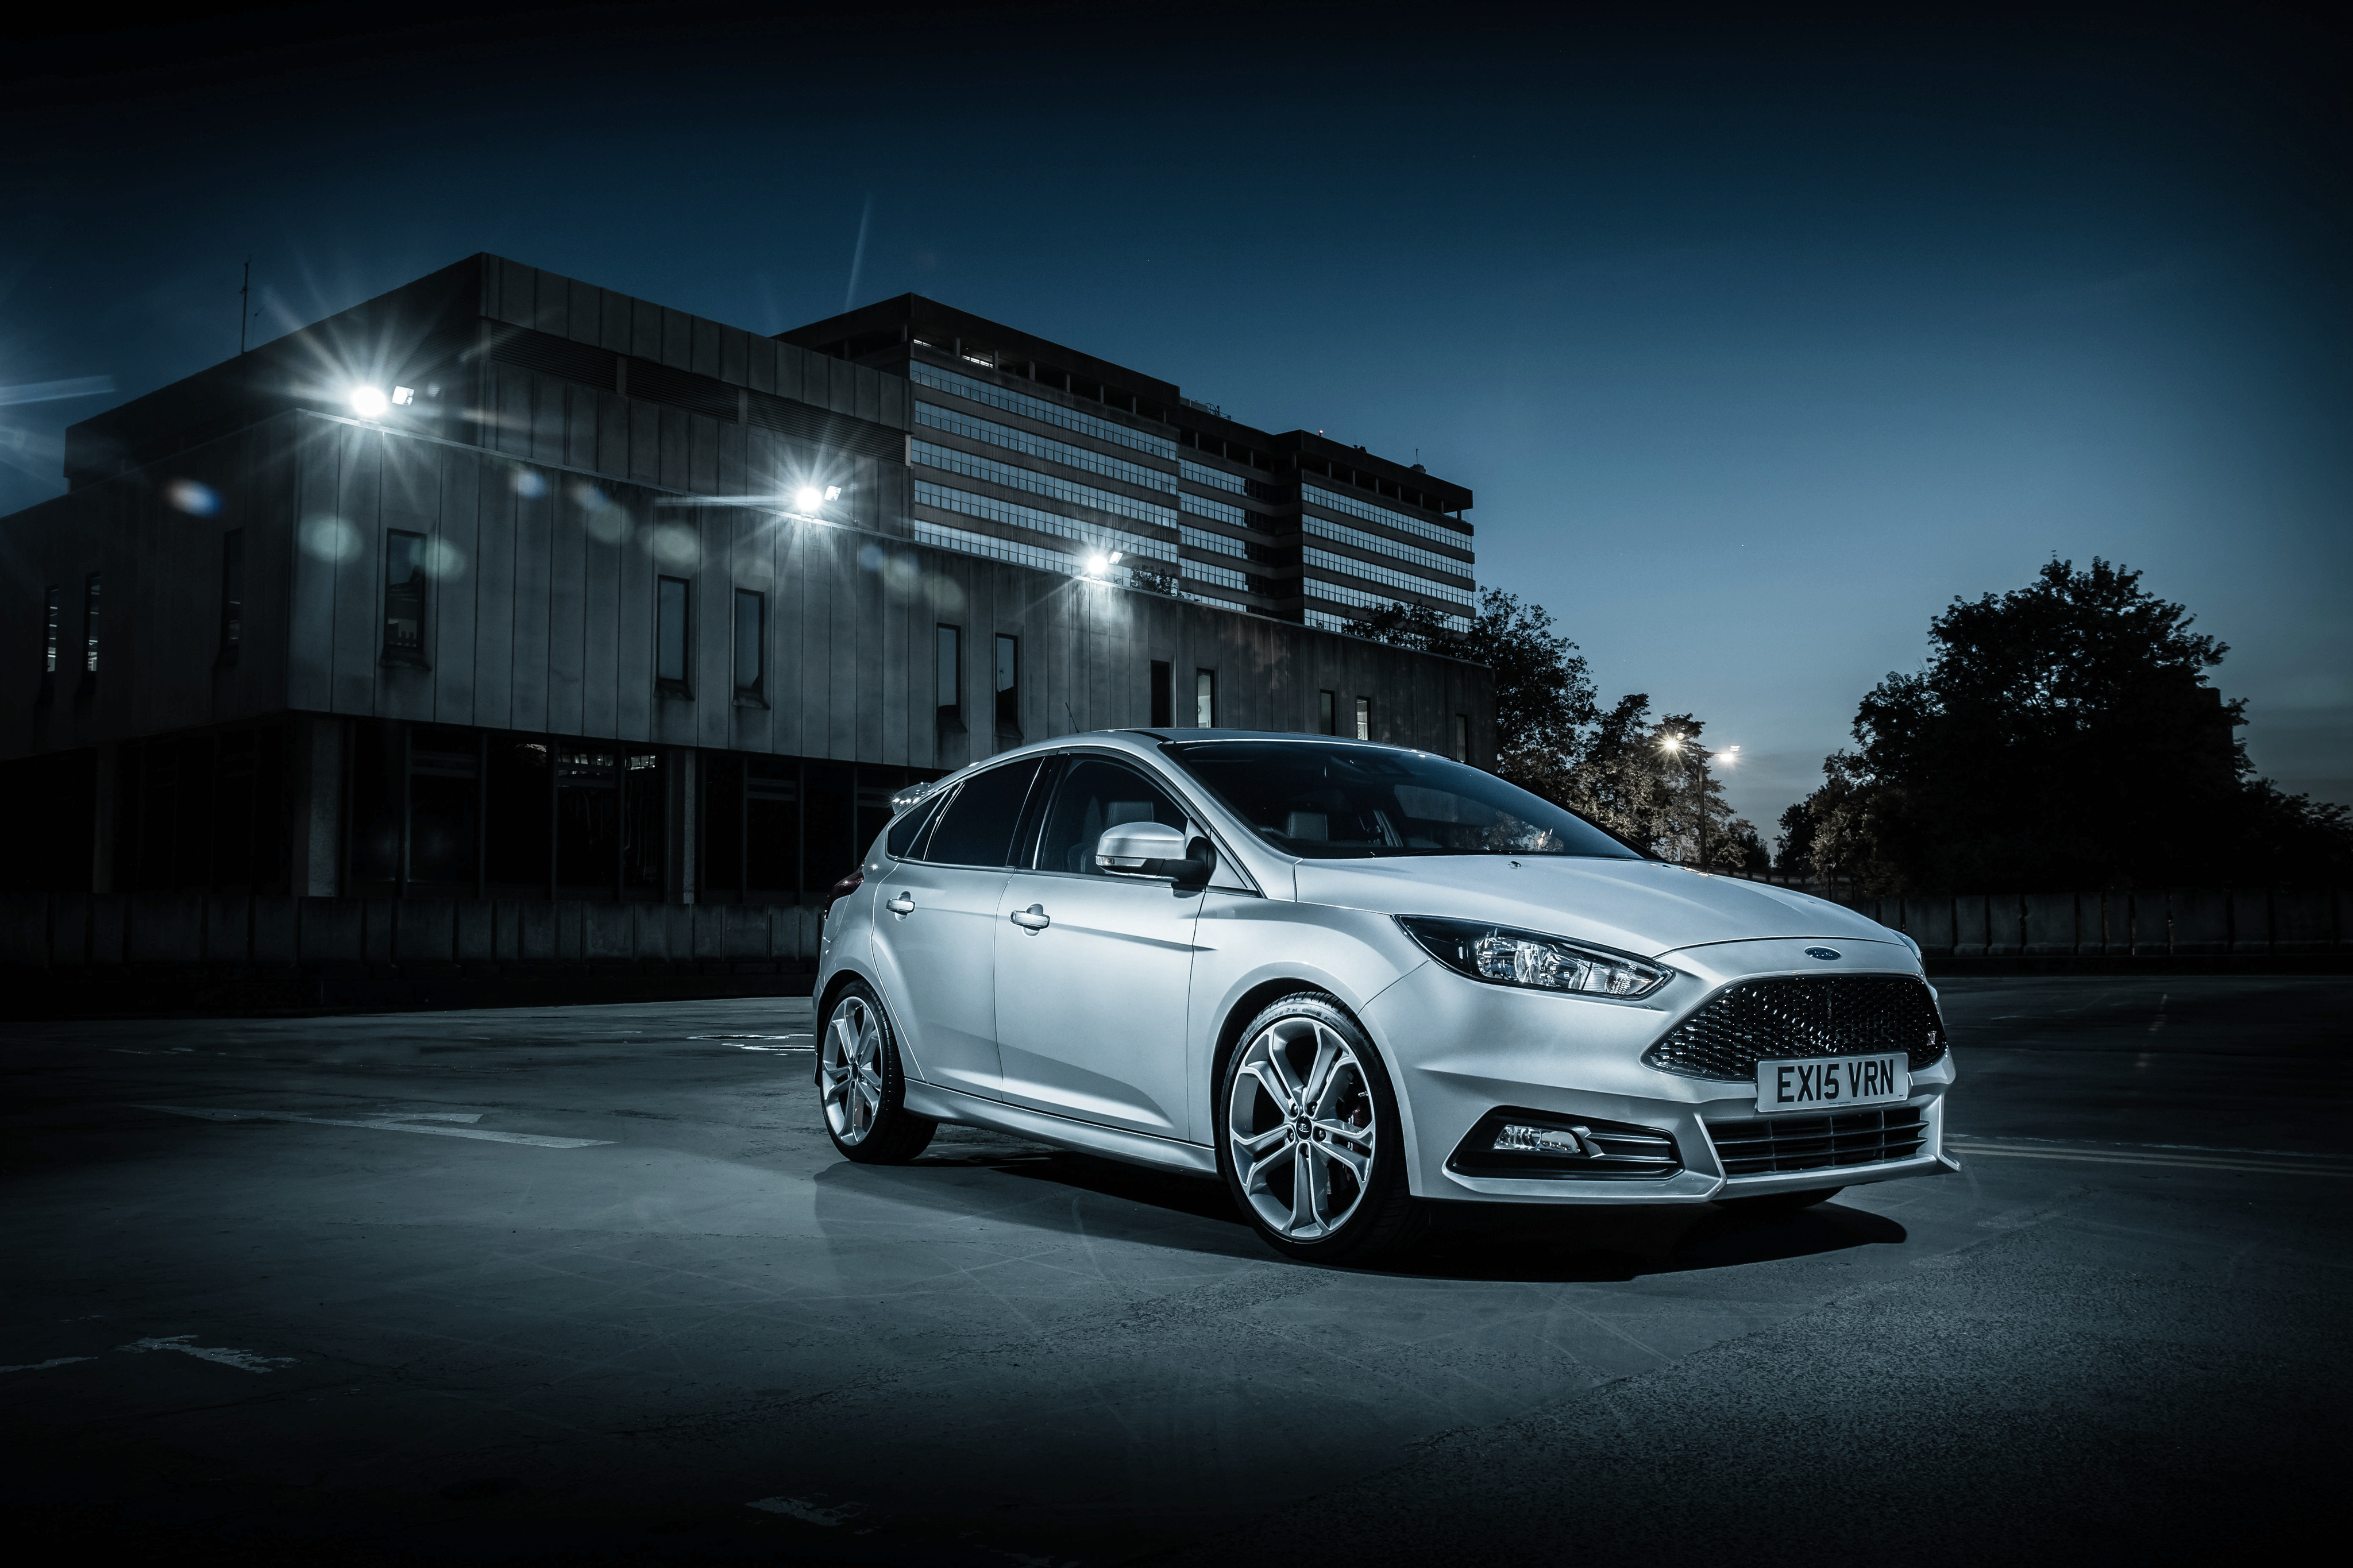 2017 Ford Focus >> Ford Focus Wallpapers, Pictures, Images